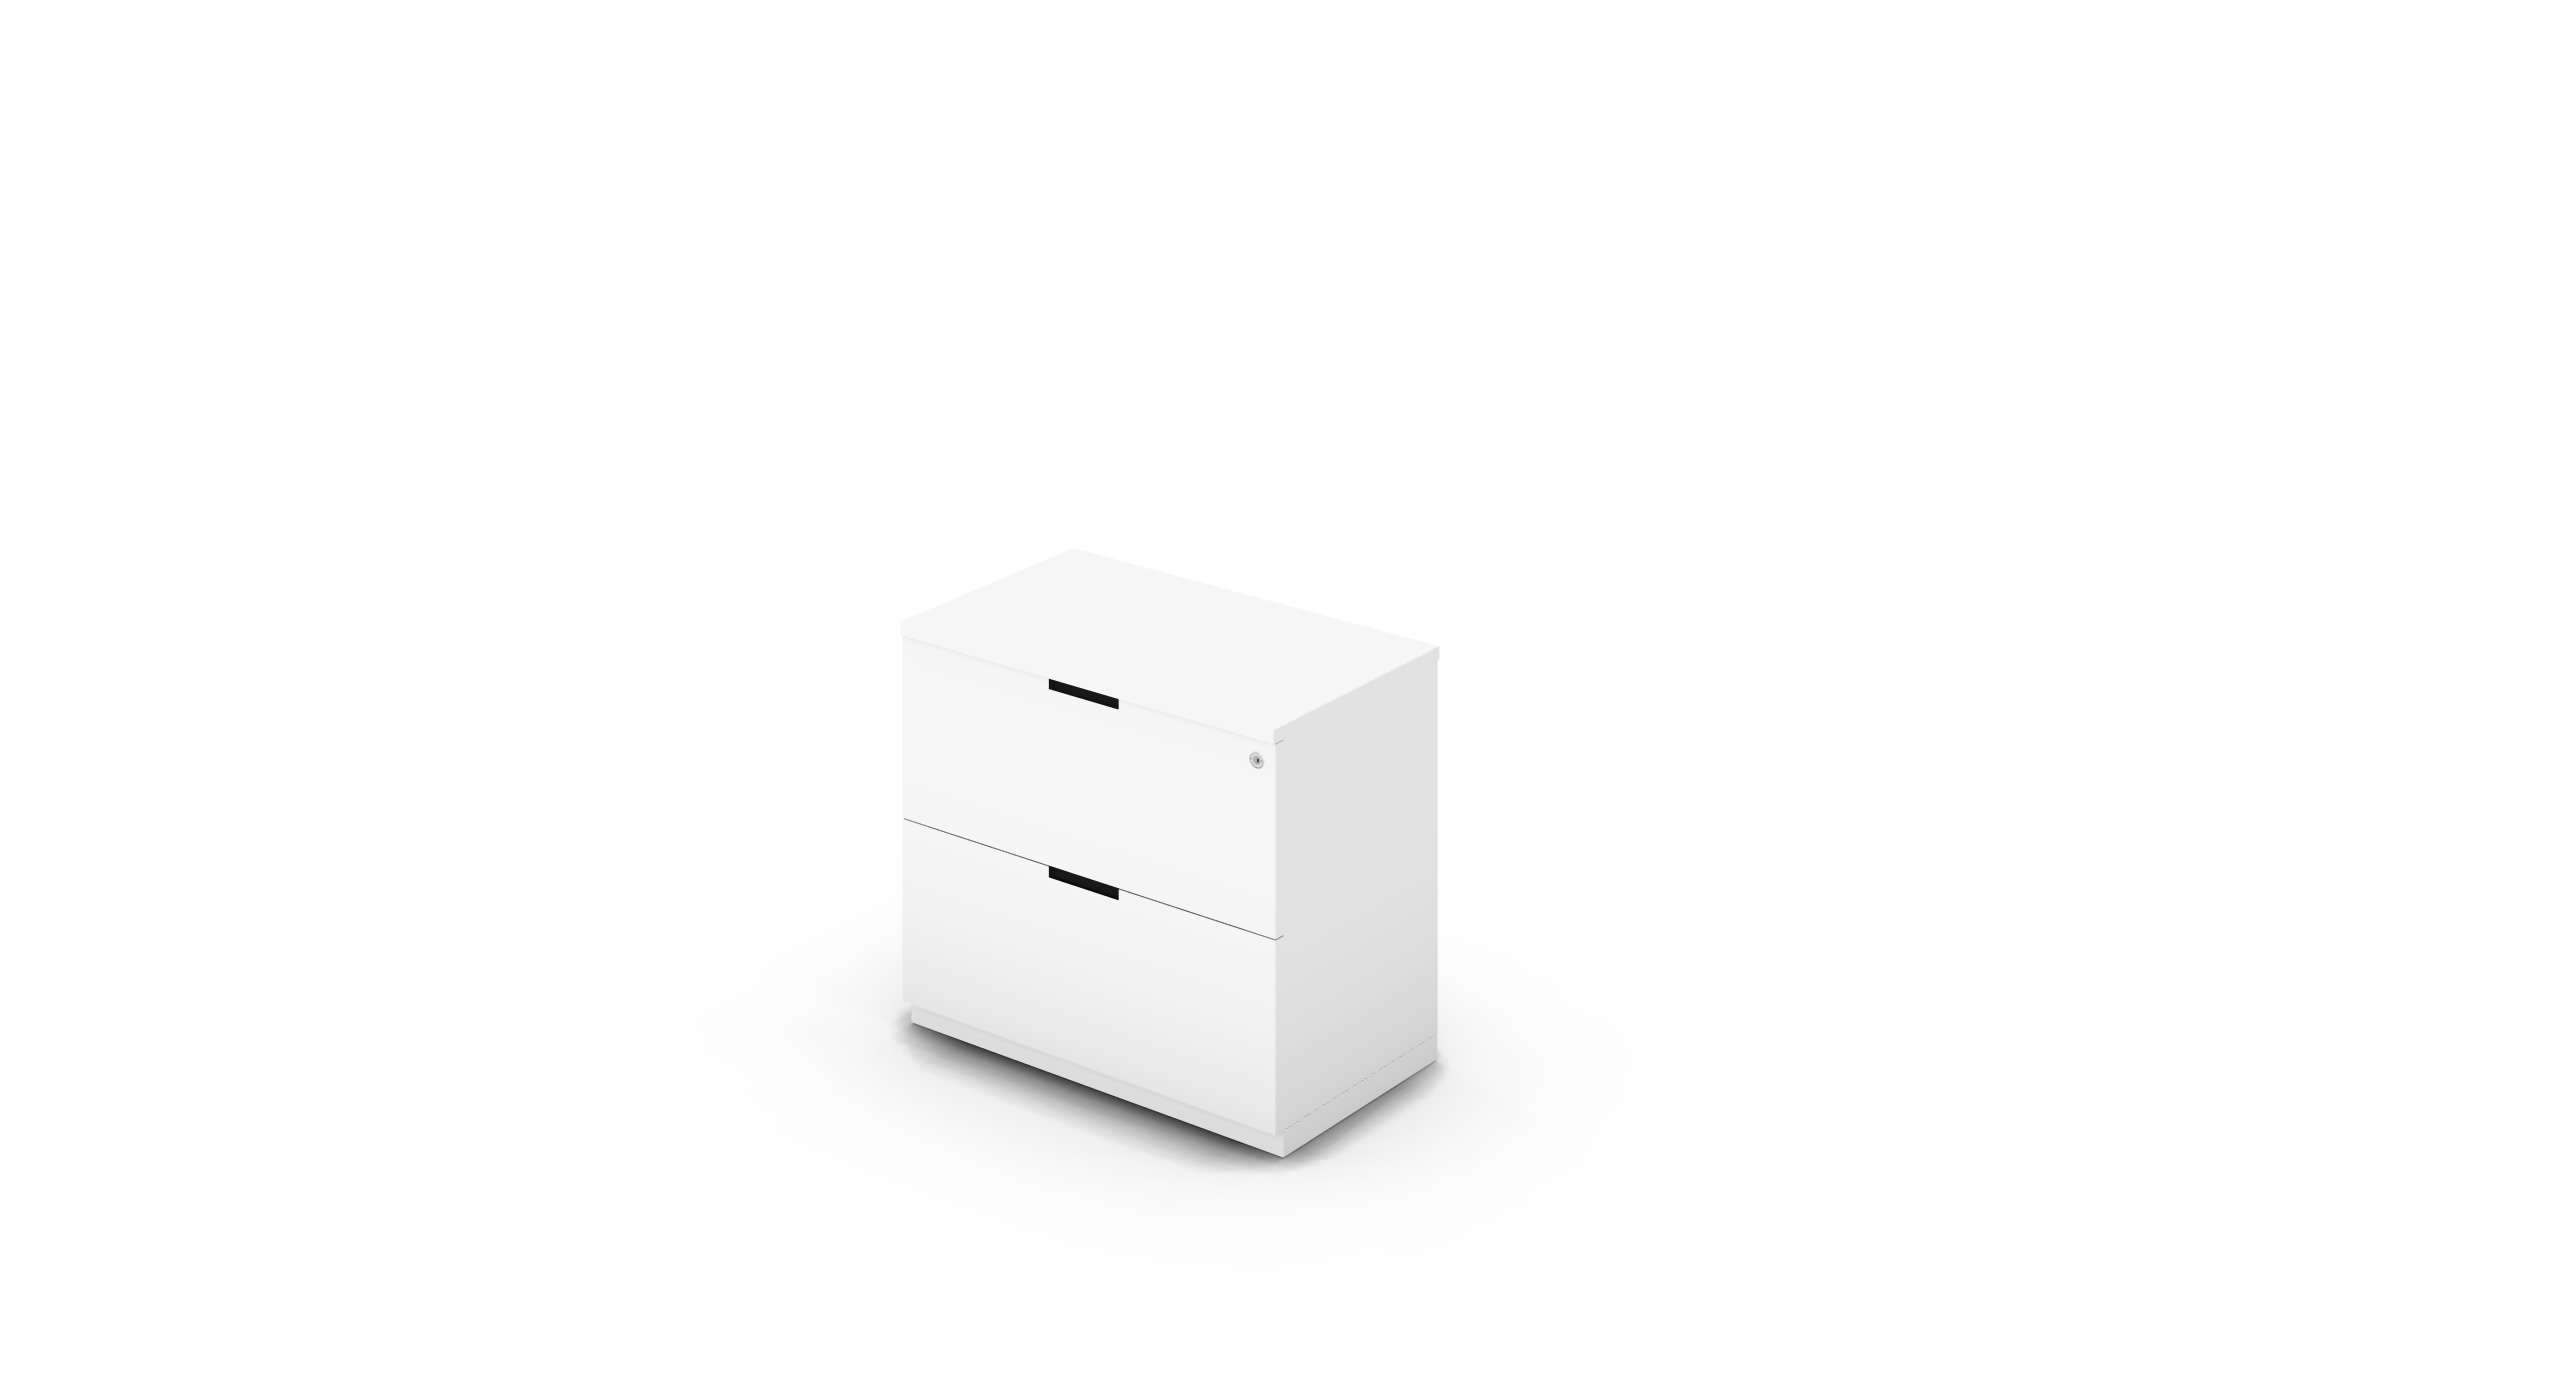 Cabinet_800x450x775_DR_White_CutOut_WithCylinder